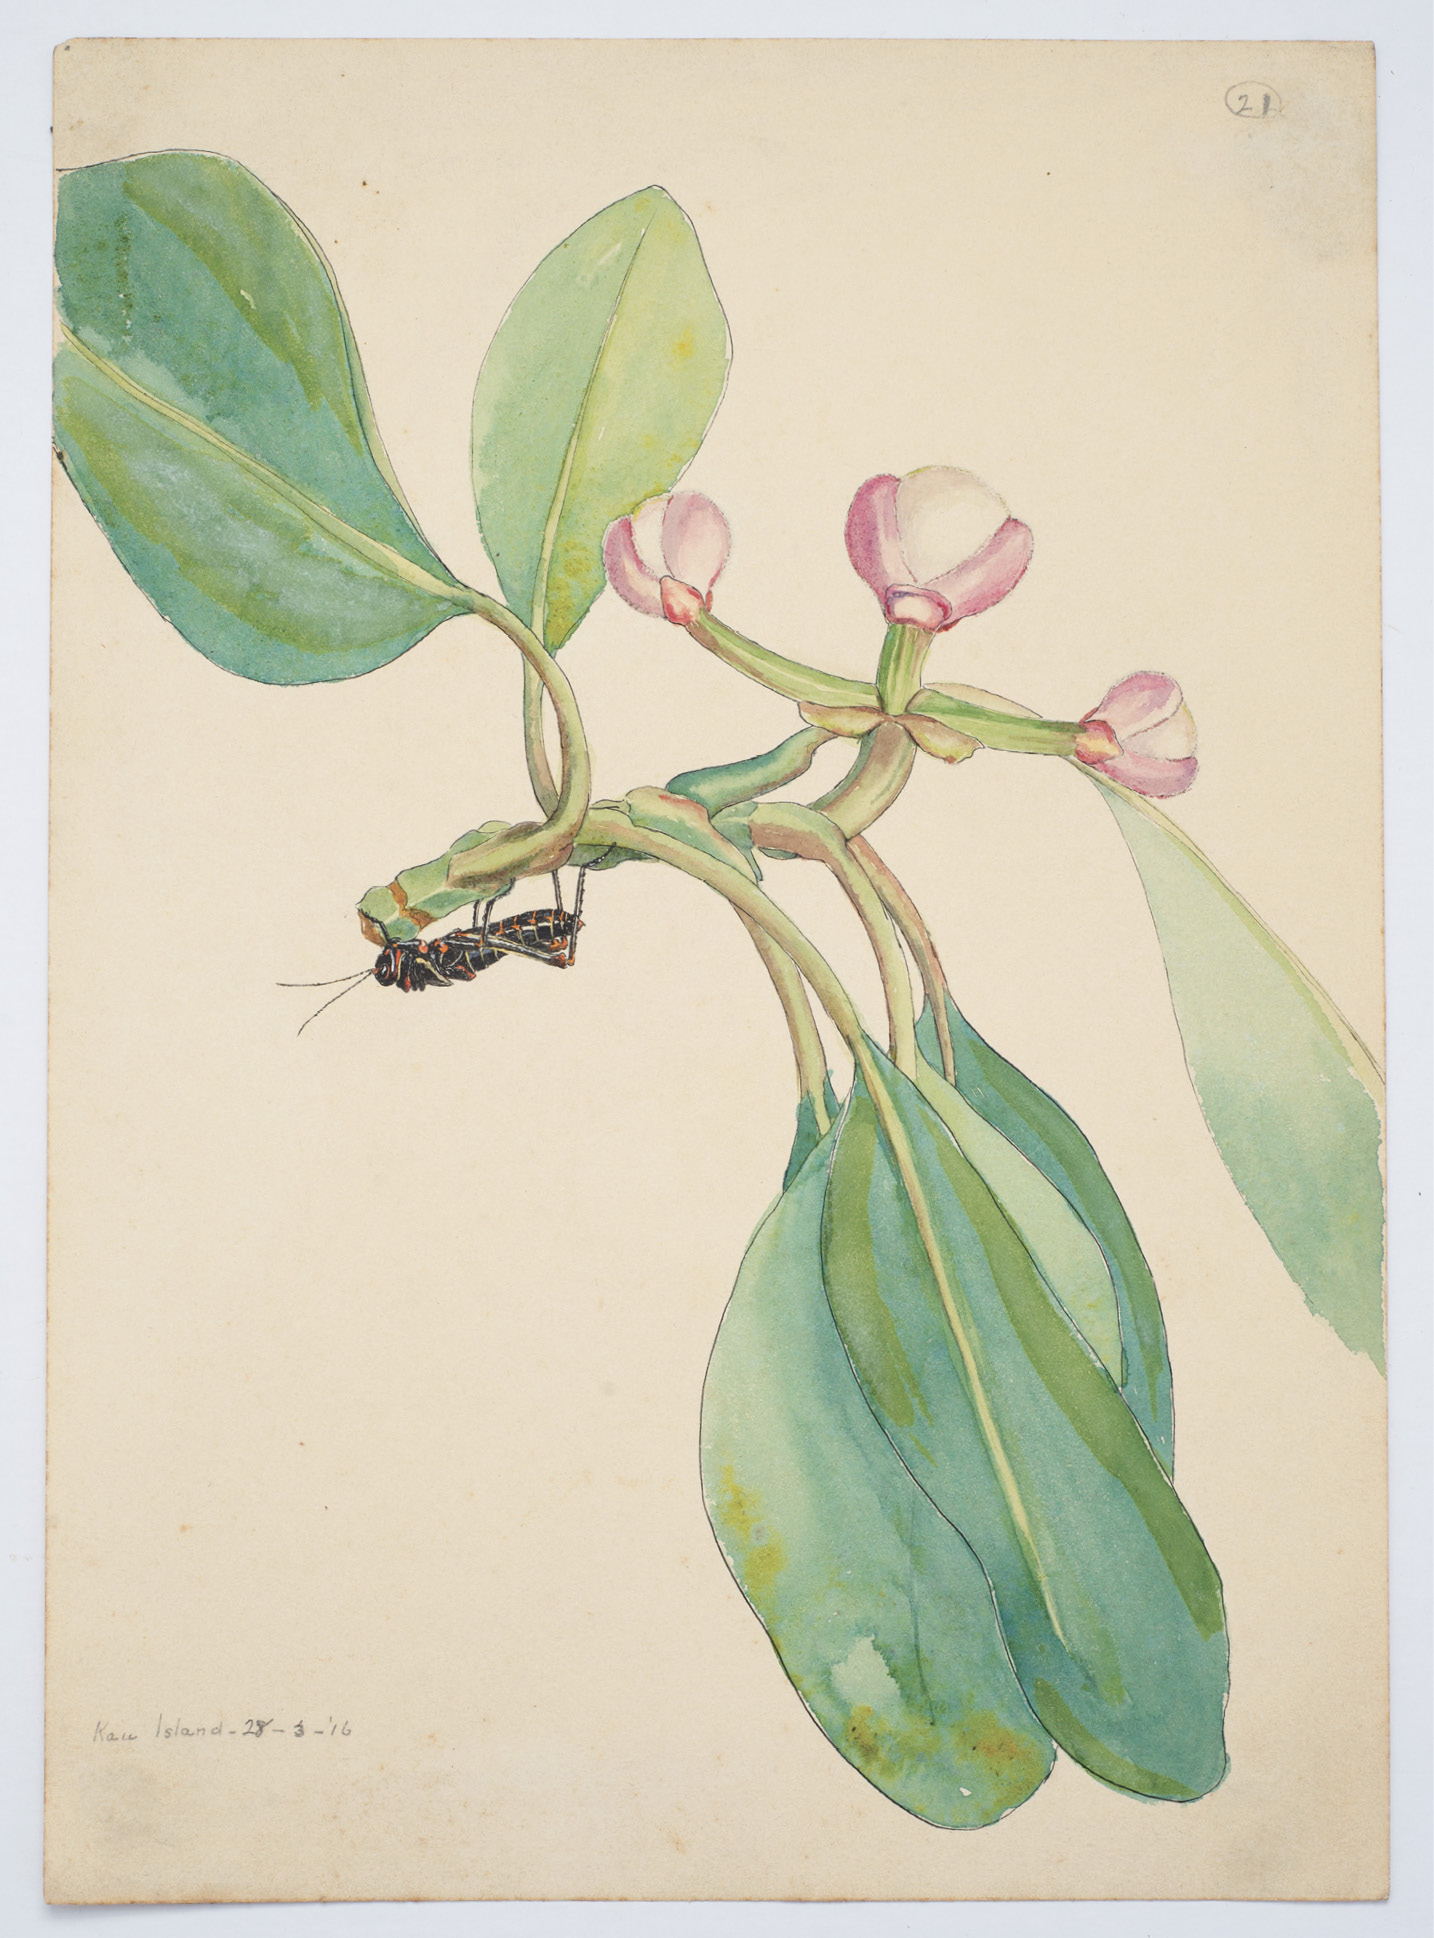 Taylor's 1916 watercolor of an unidentified plant, possibly Clusia grandiflora